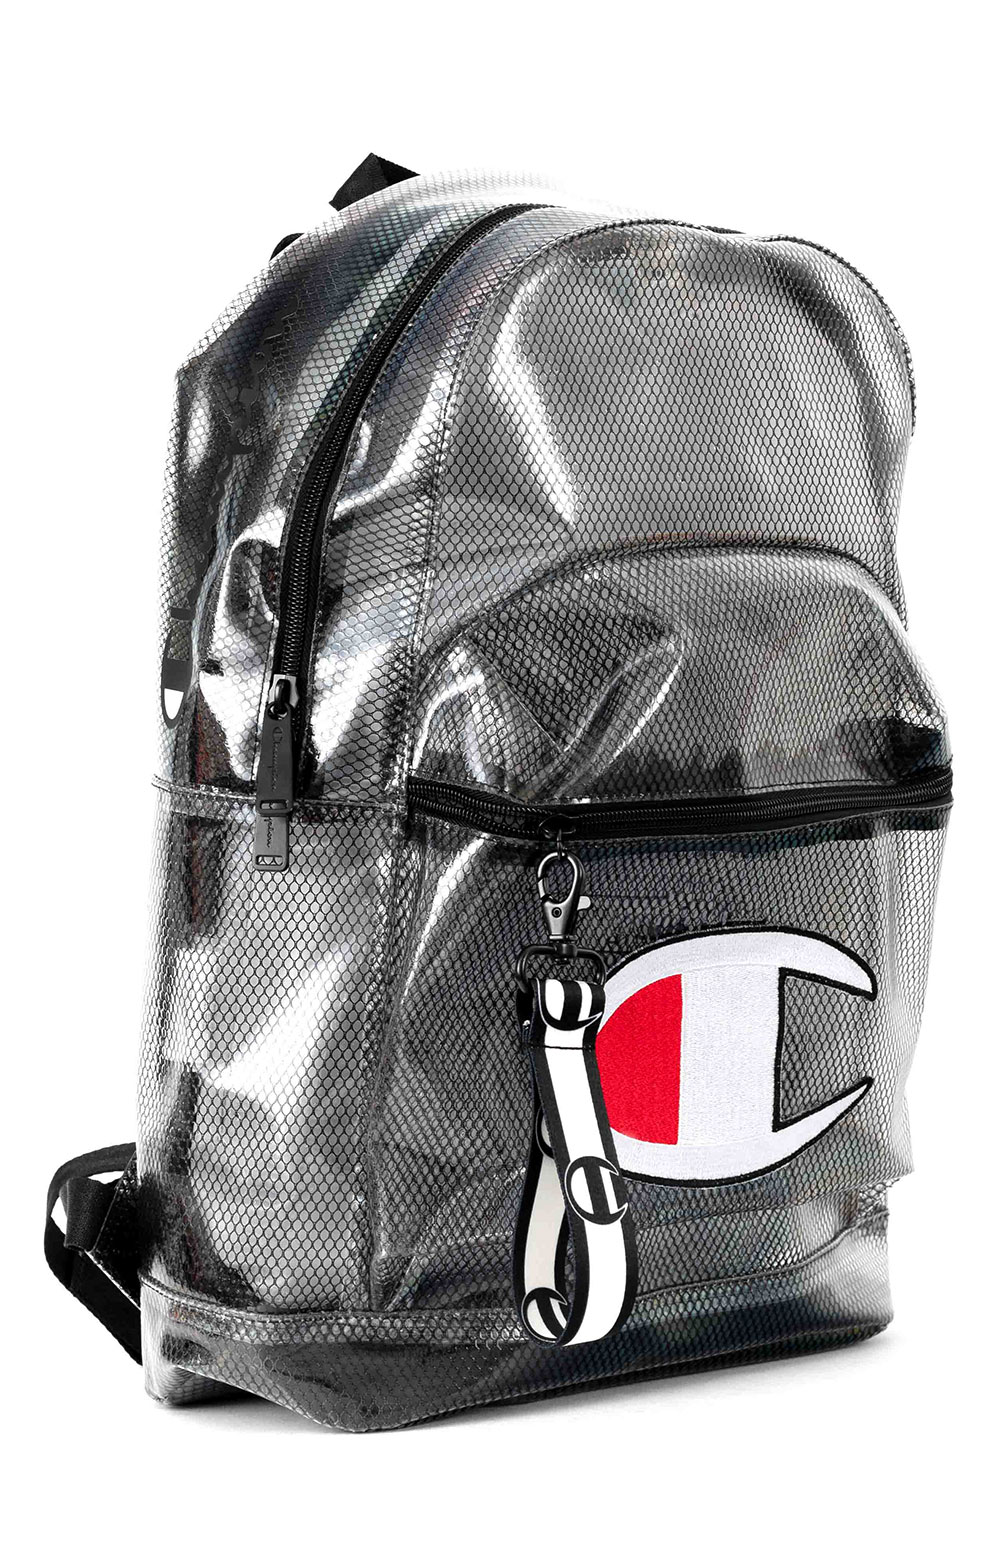 (CH1151) Supercize Clear Backpack - Black  2